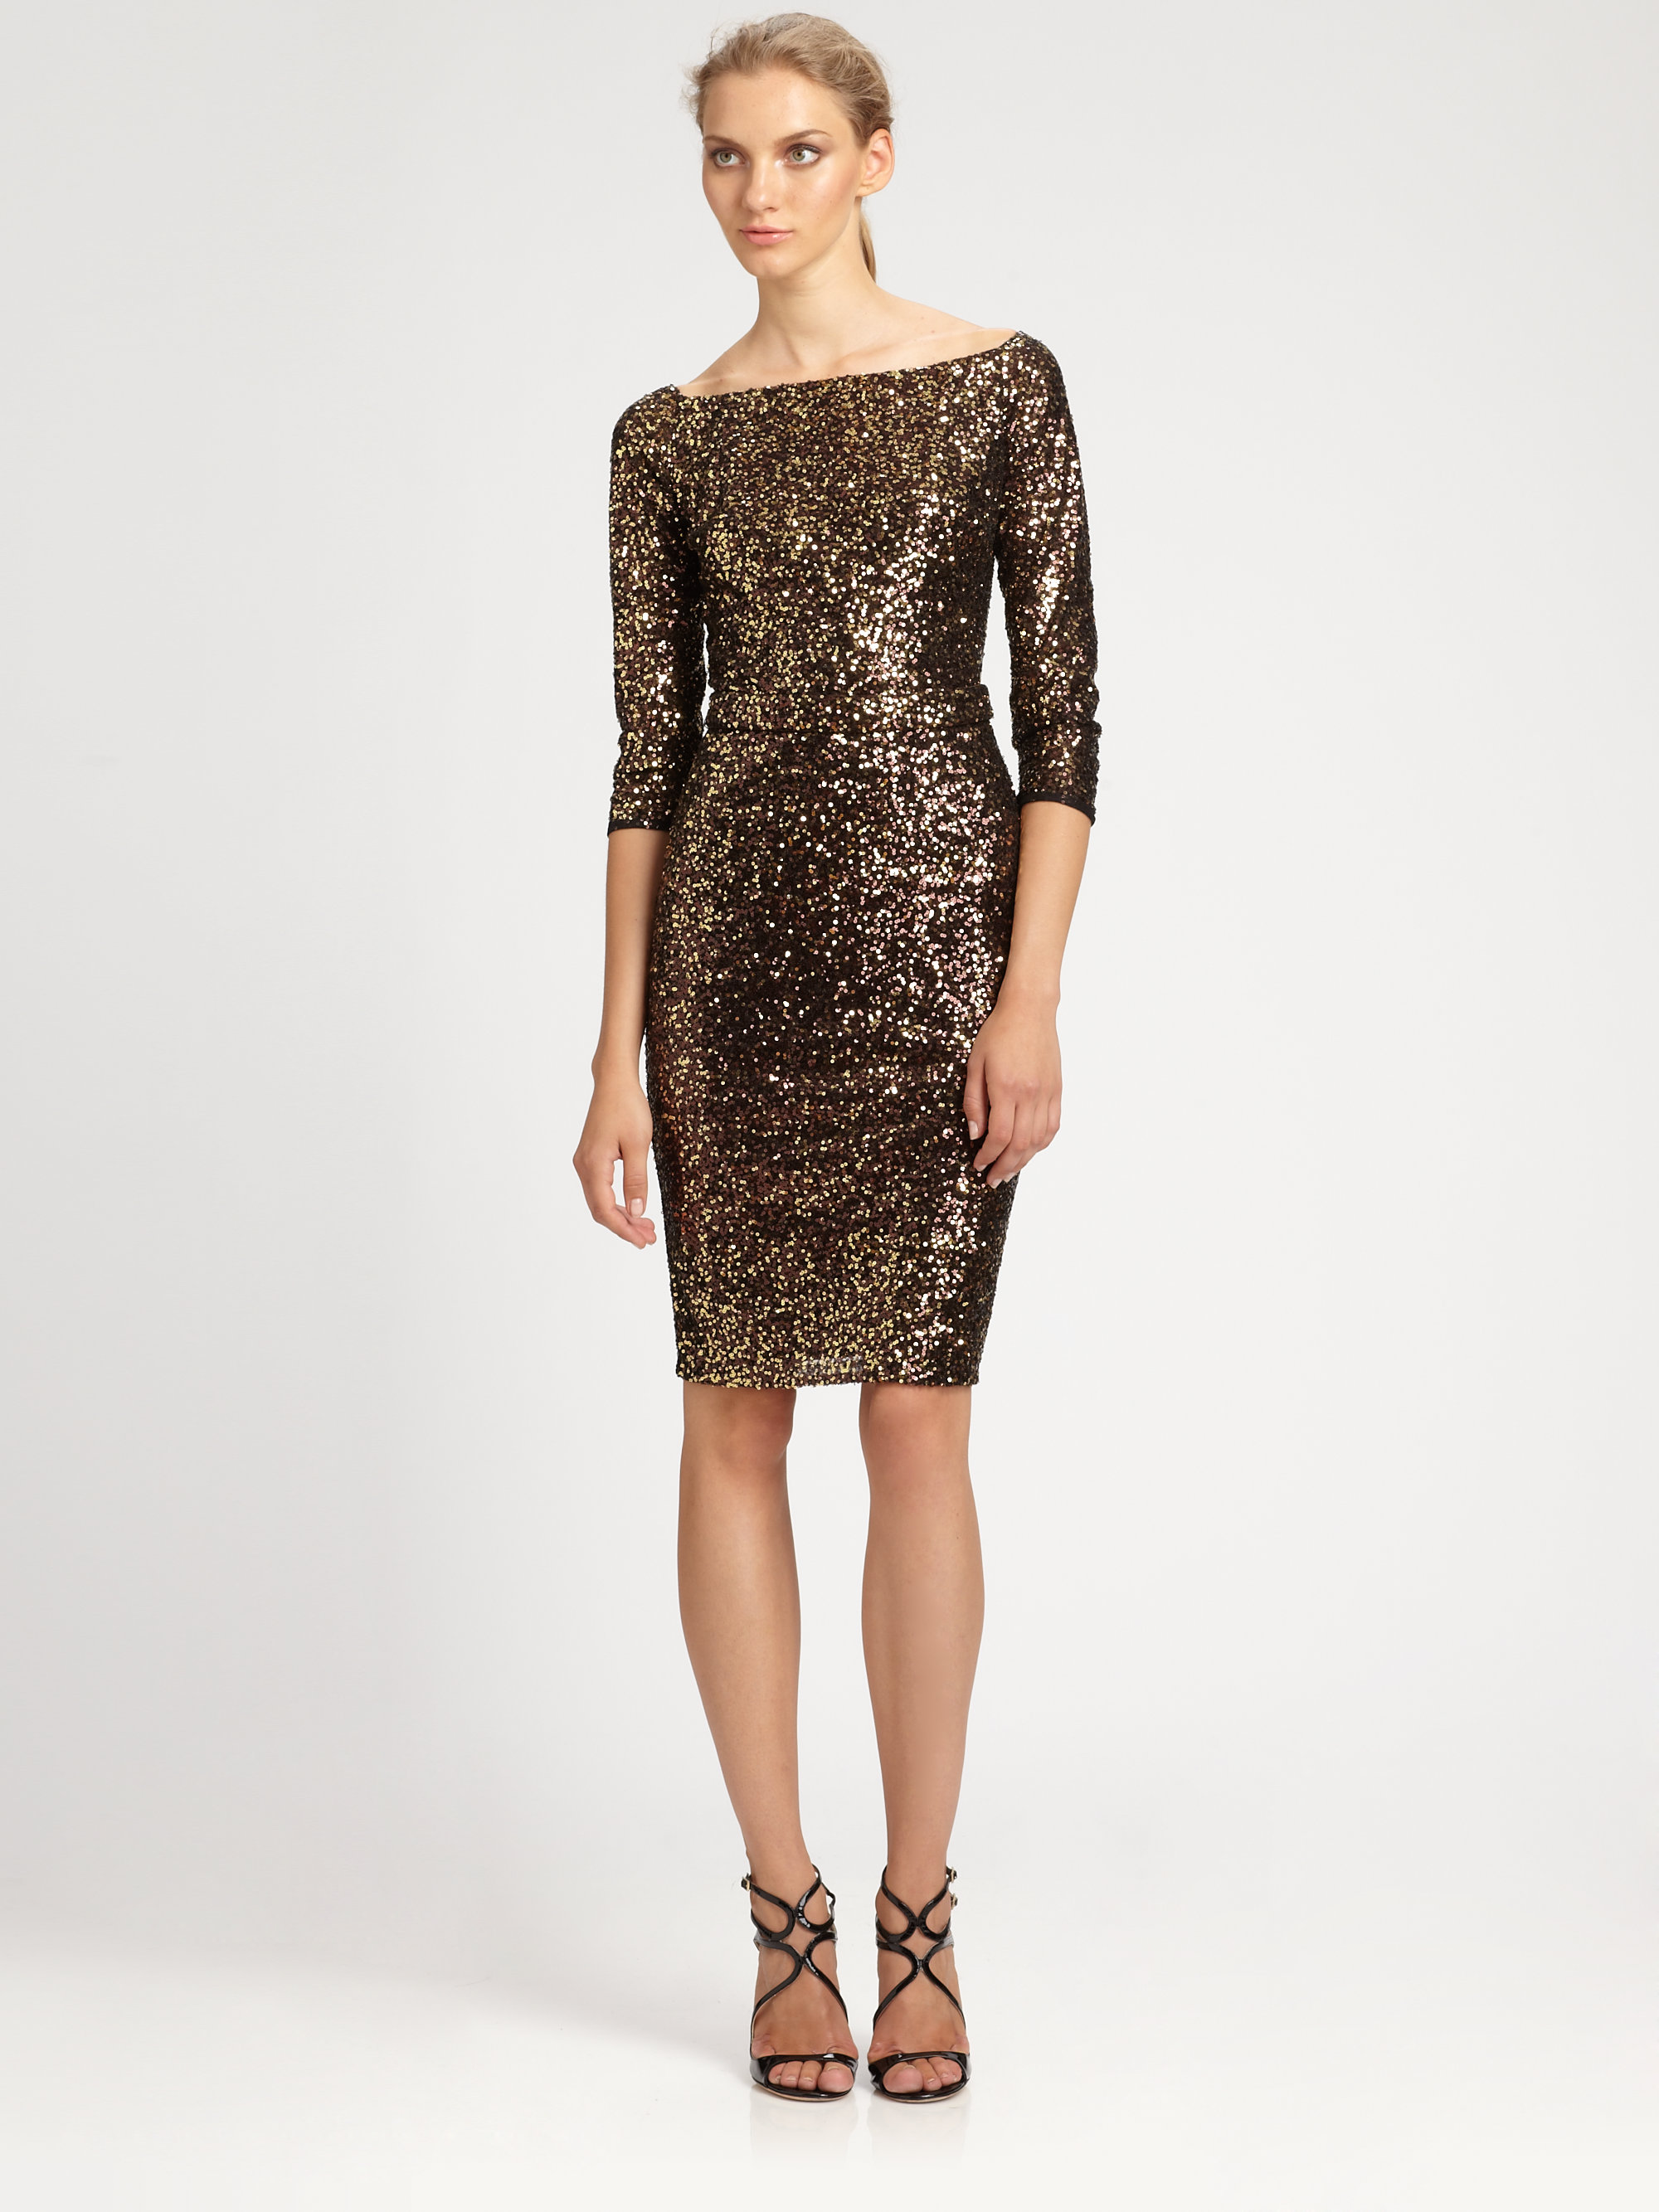 David meister Sequined Dress in Black | Lyst